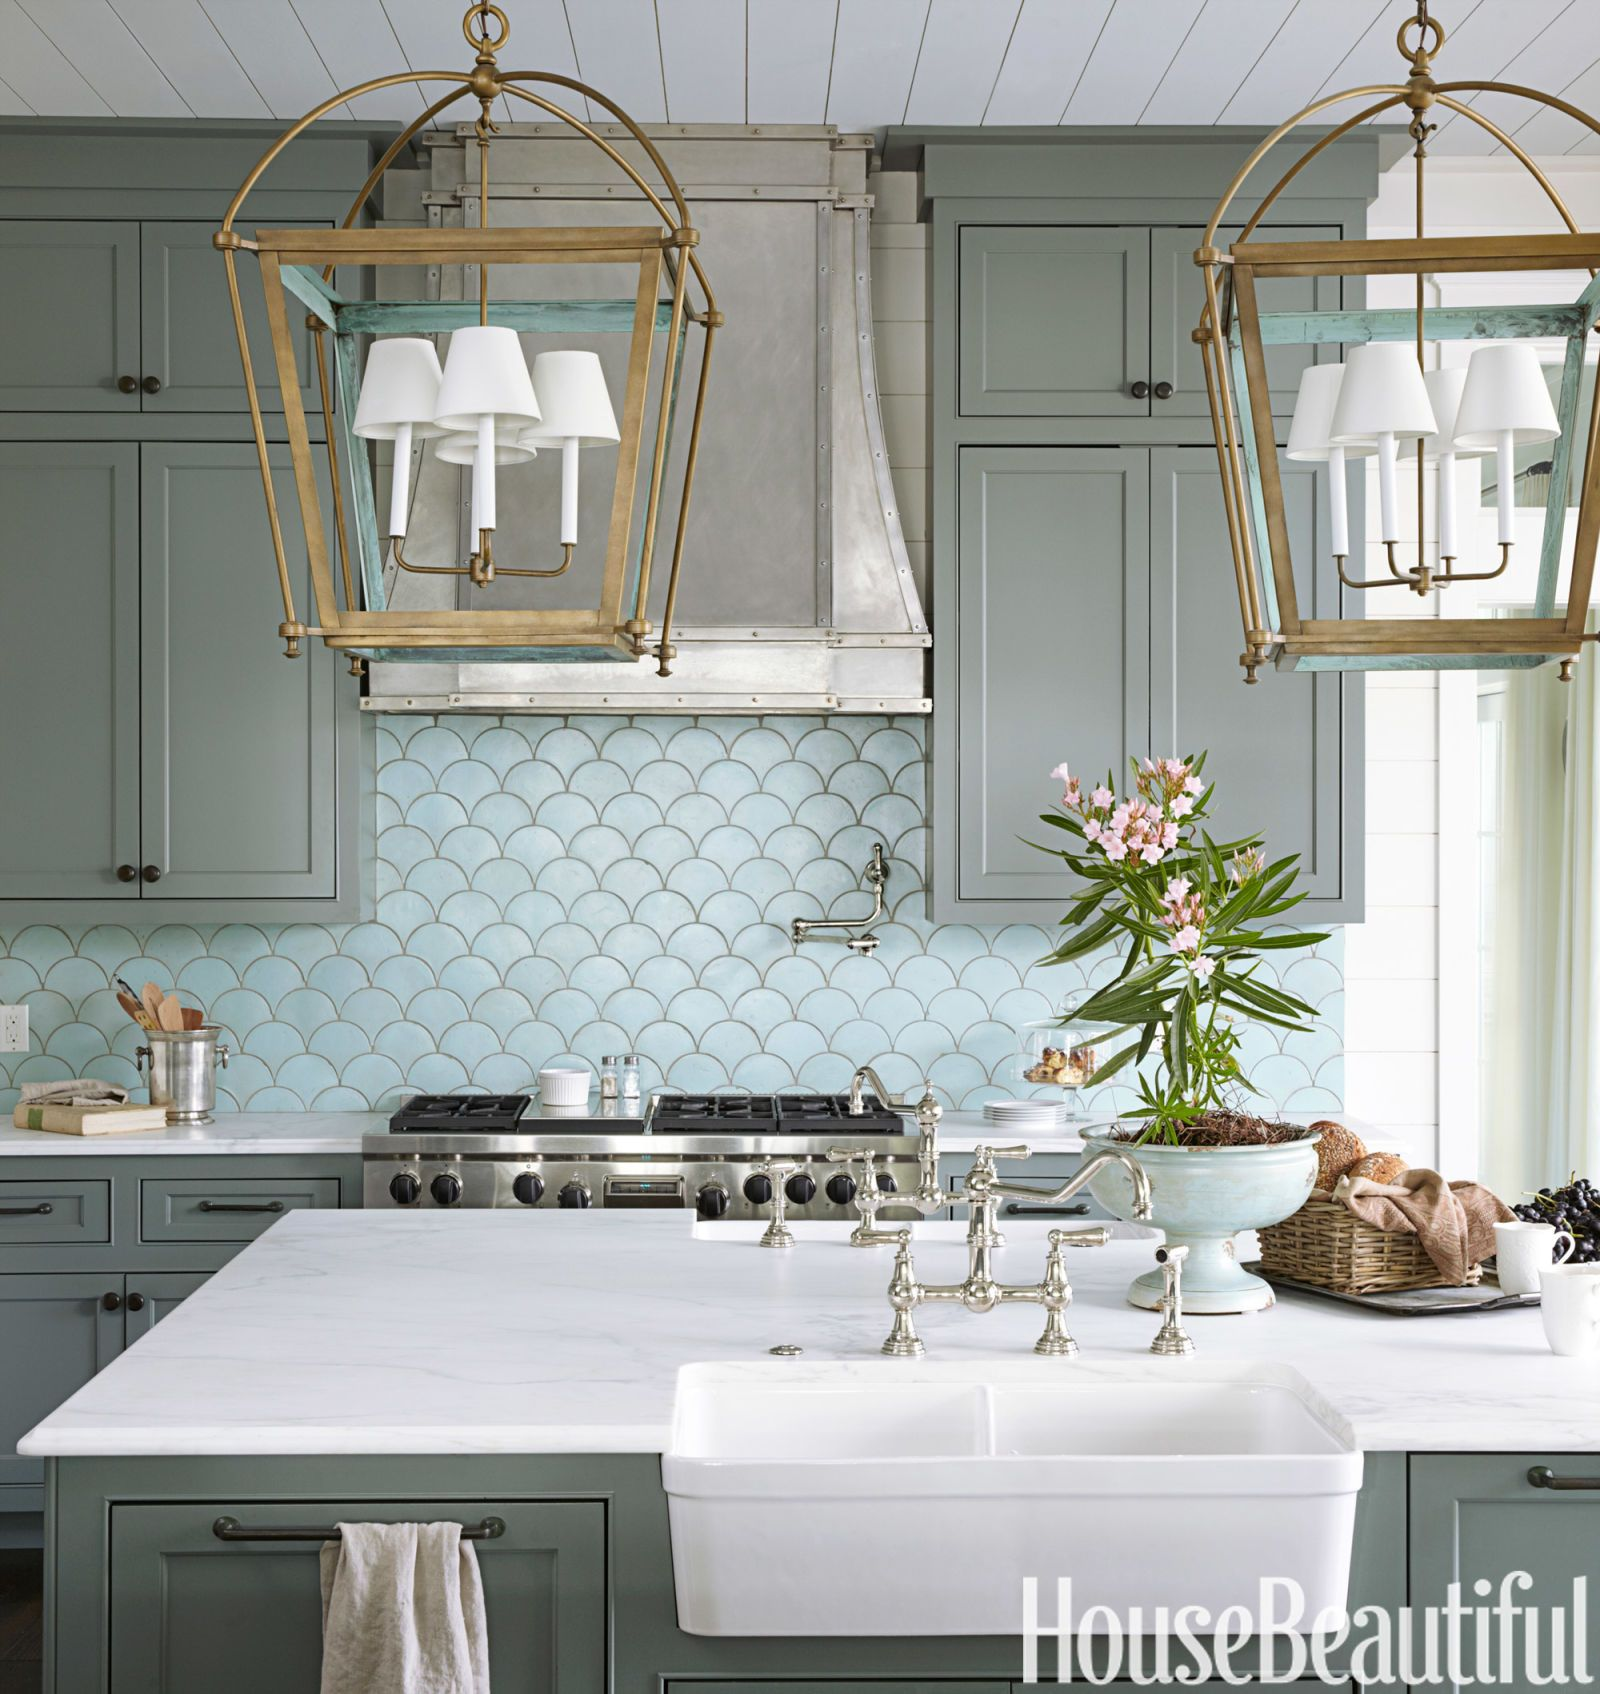 Ocean Kitchen Decor: Your Favorite Rooms Of The Week